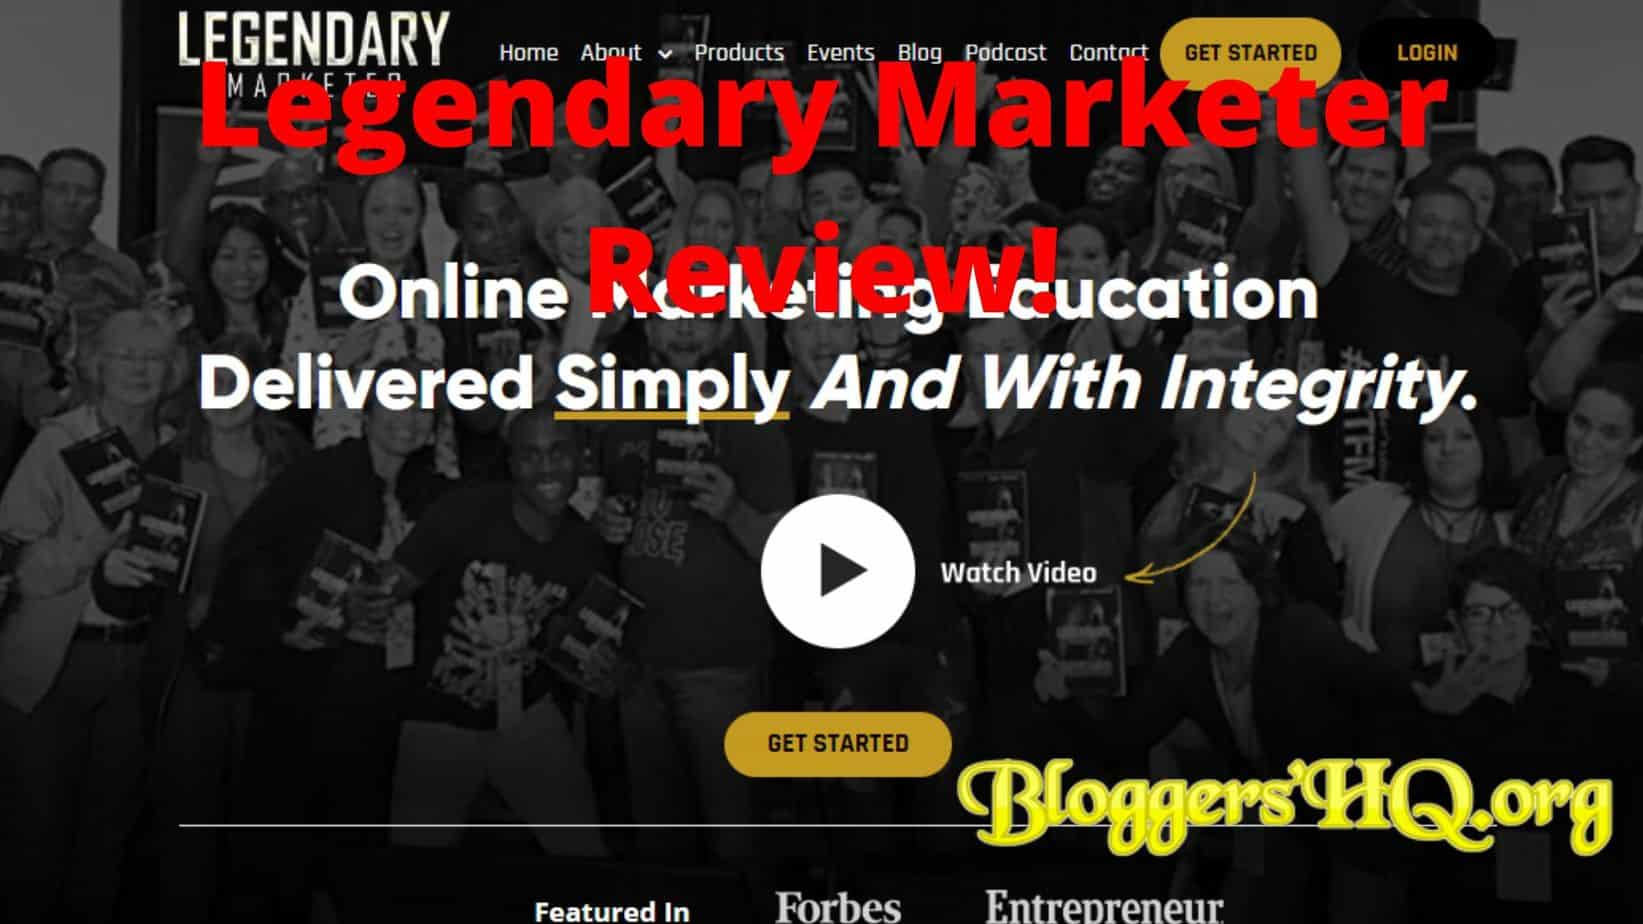 Cheapest Alternative For Legendary Marketer 2020